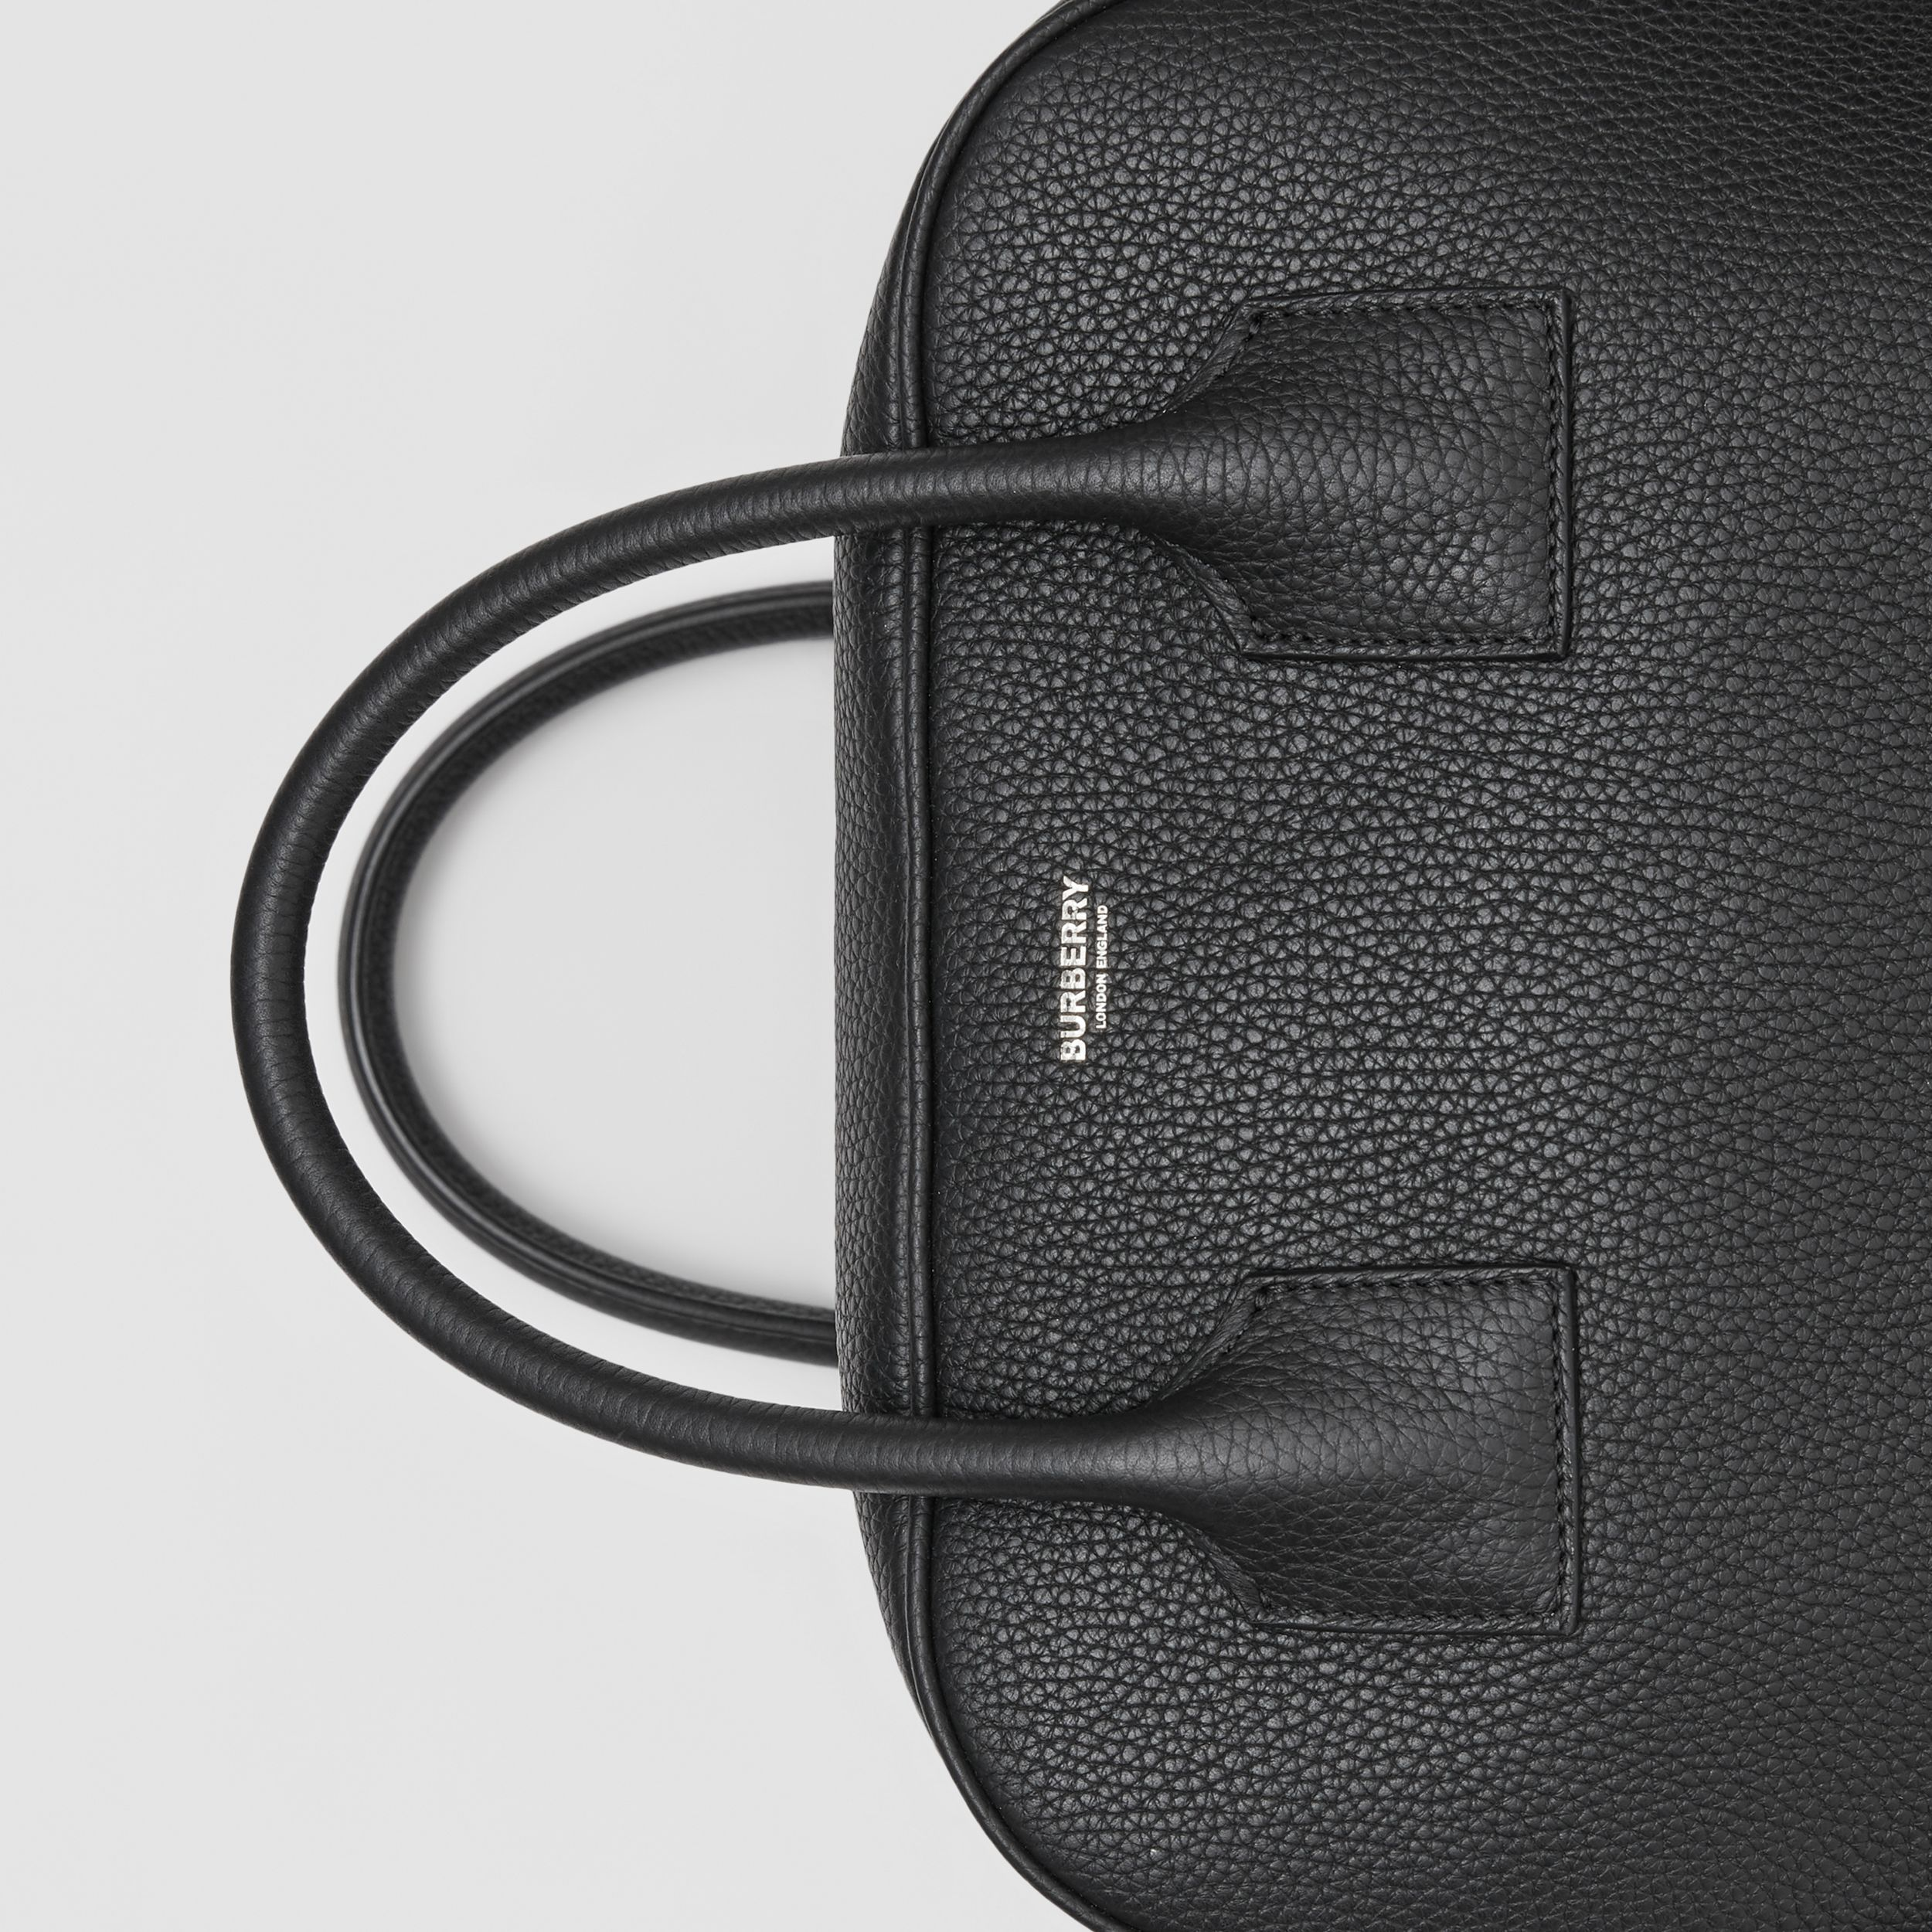 Medium Leather Cube Bag in Black - Women | Burberry - 2